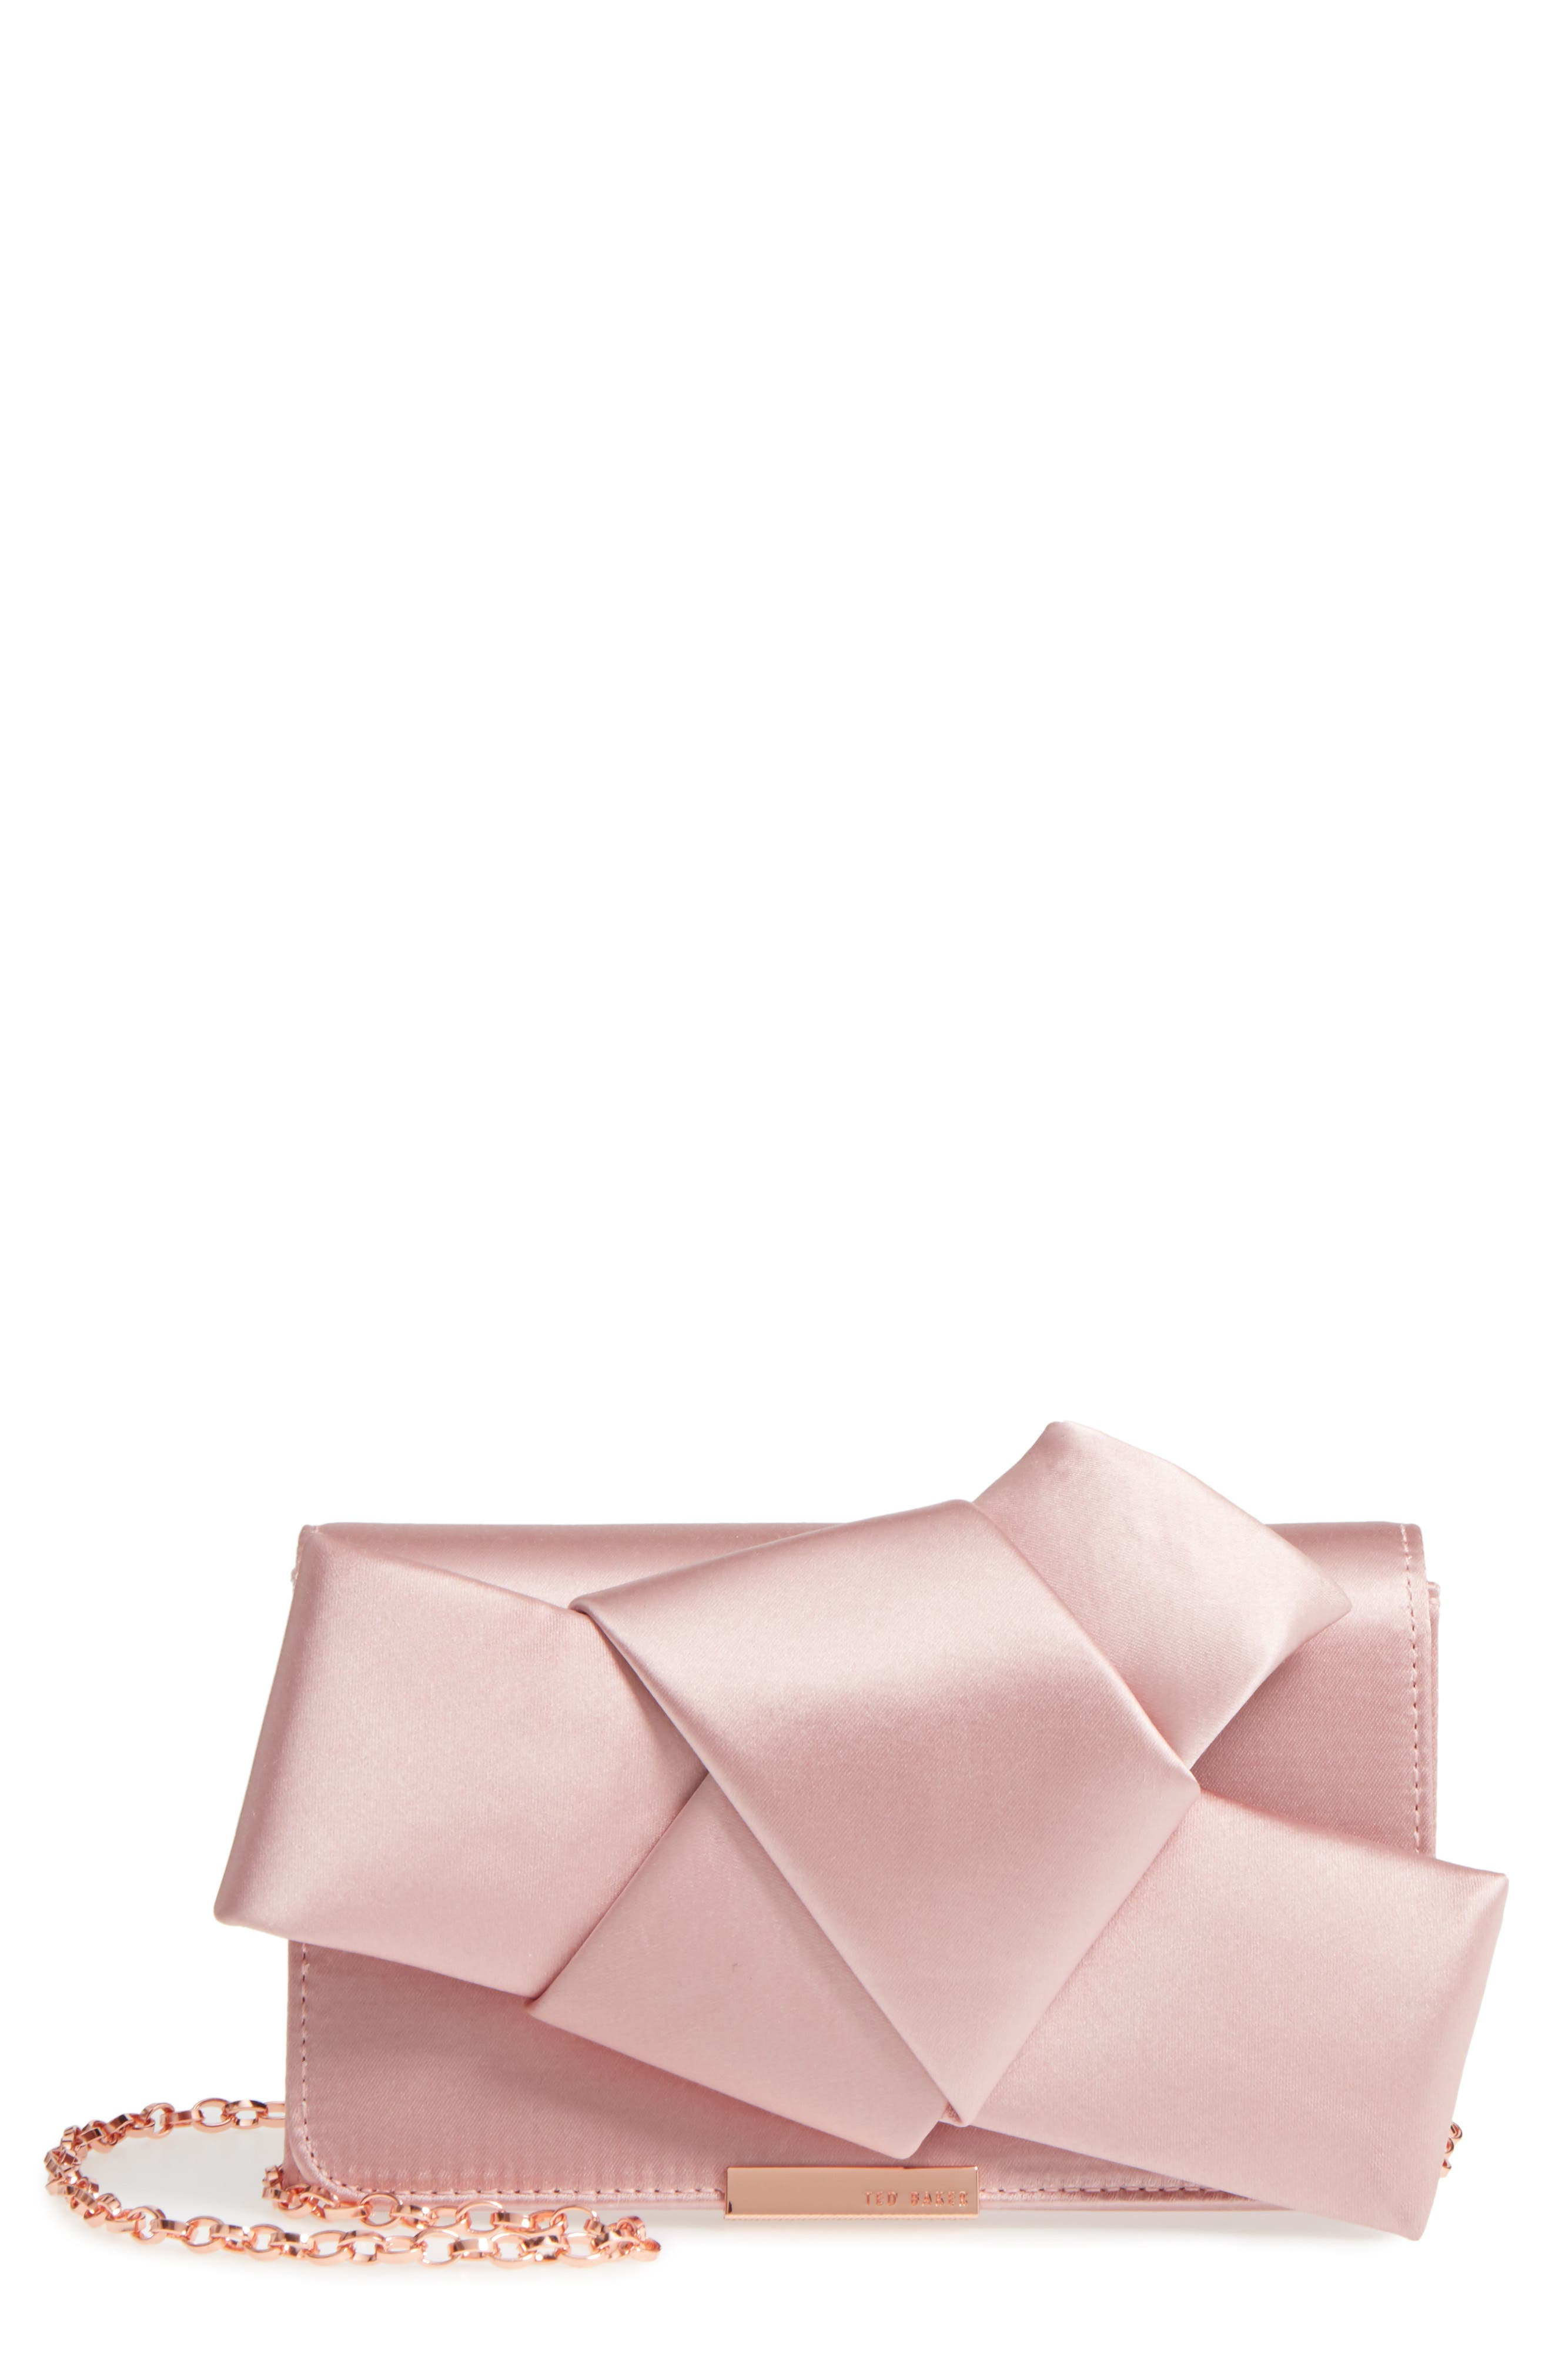 Fefee Satin Knotted Bow Clutch,                             Main thumbnail 2, color,